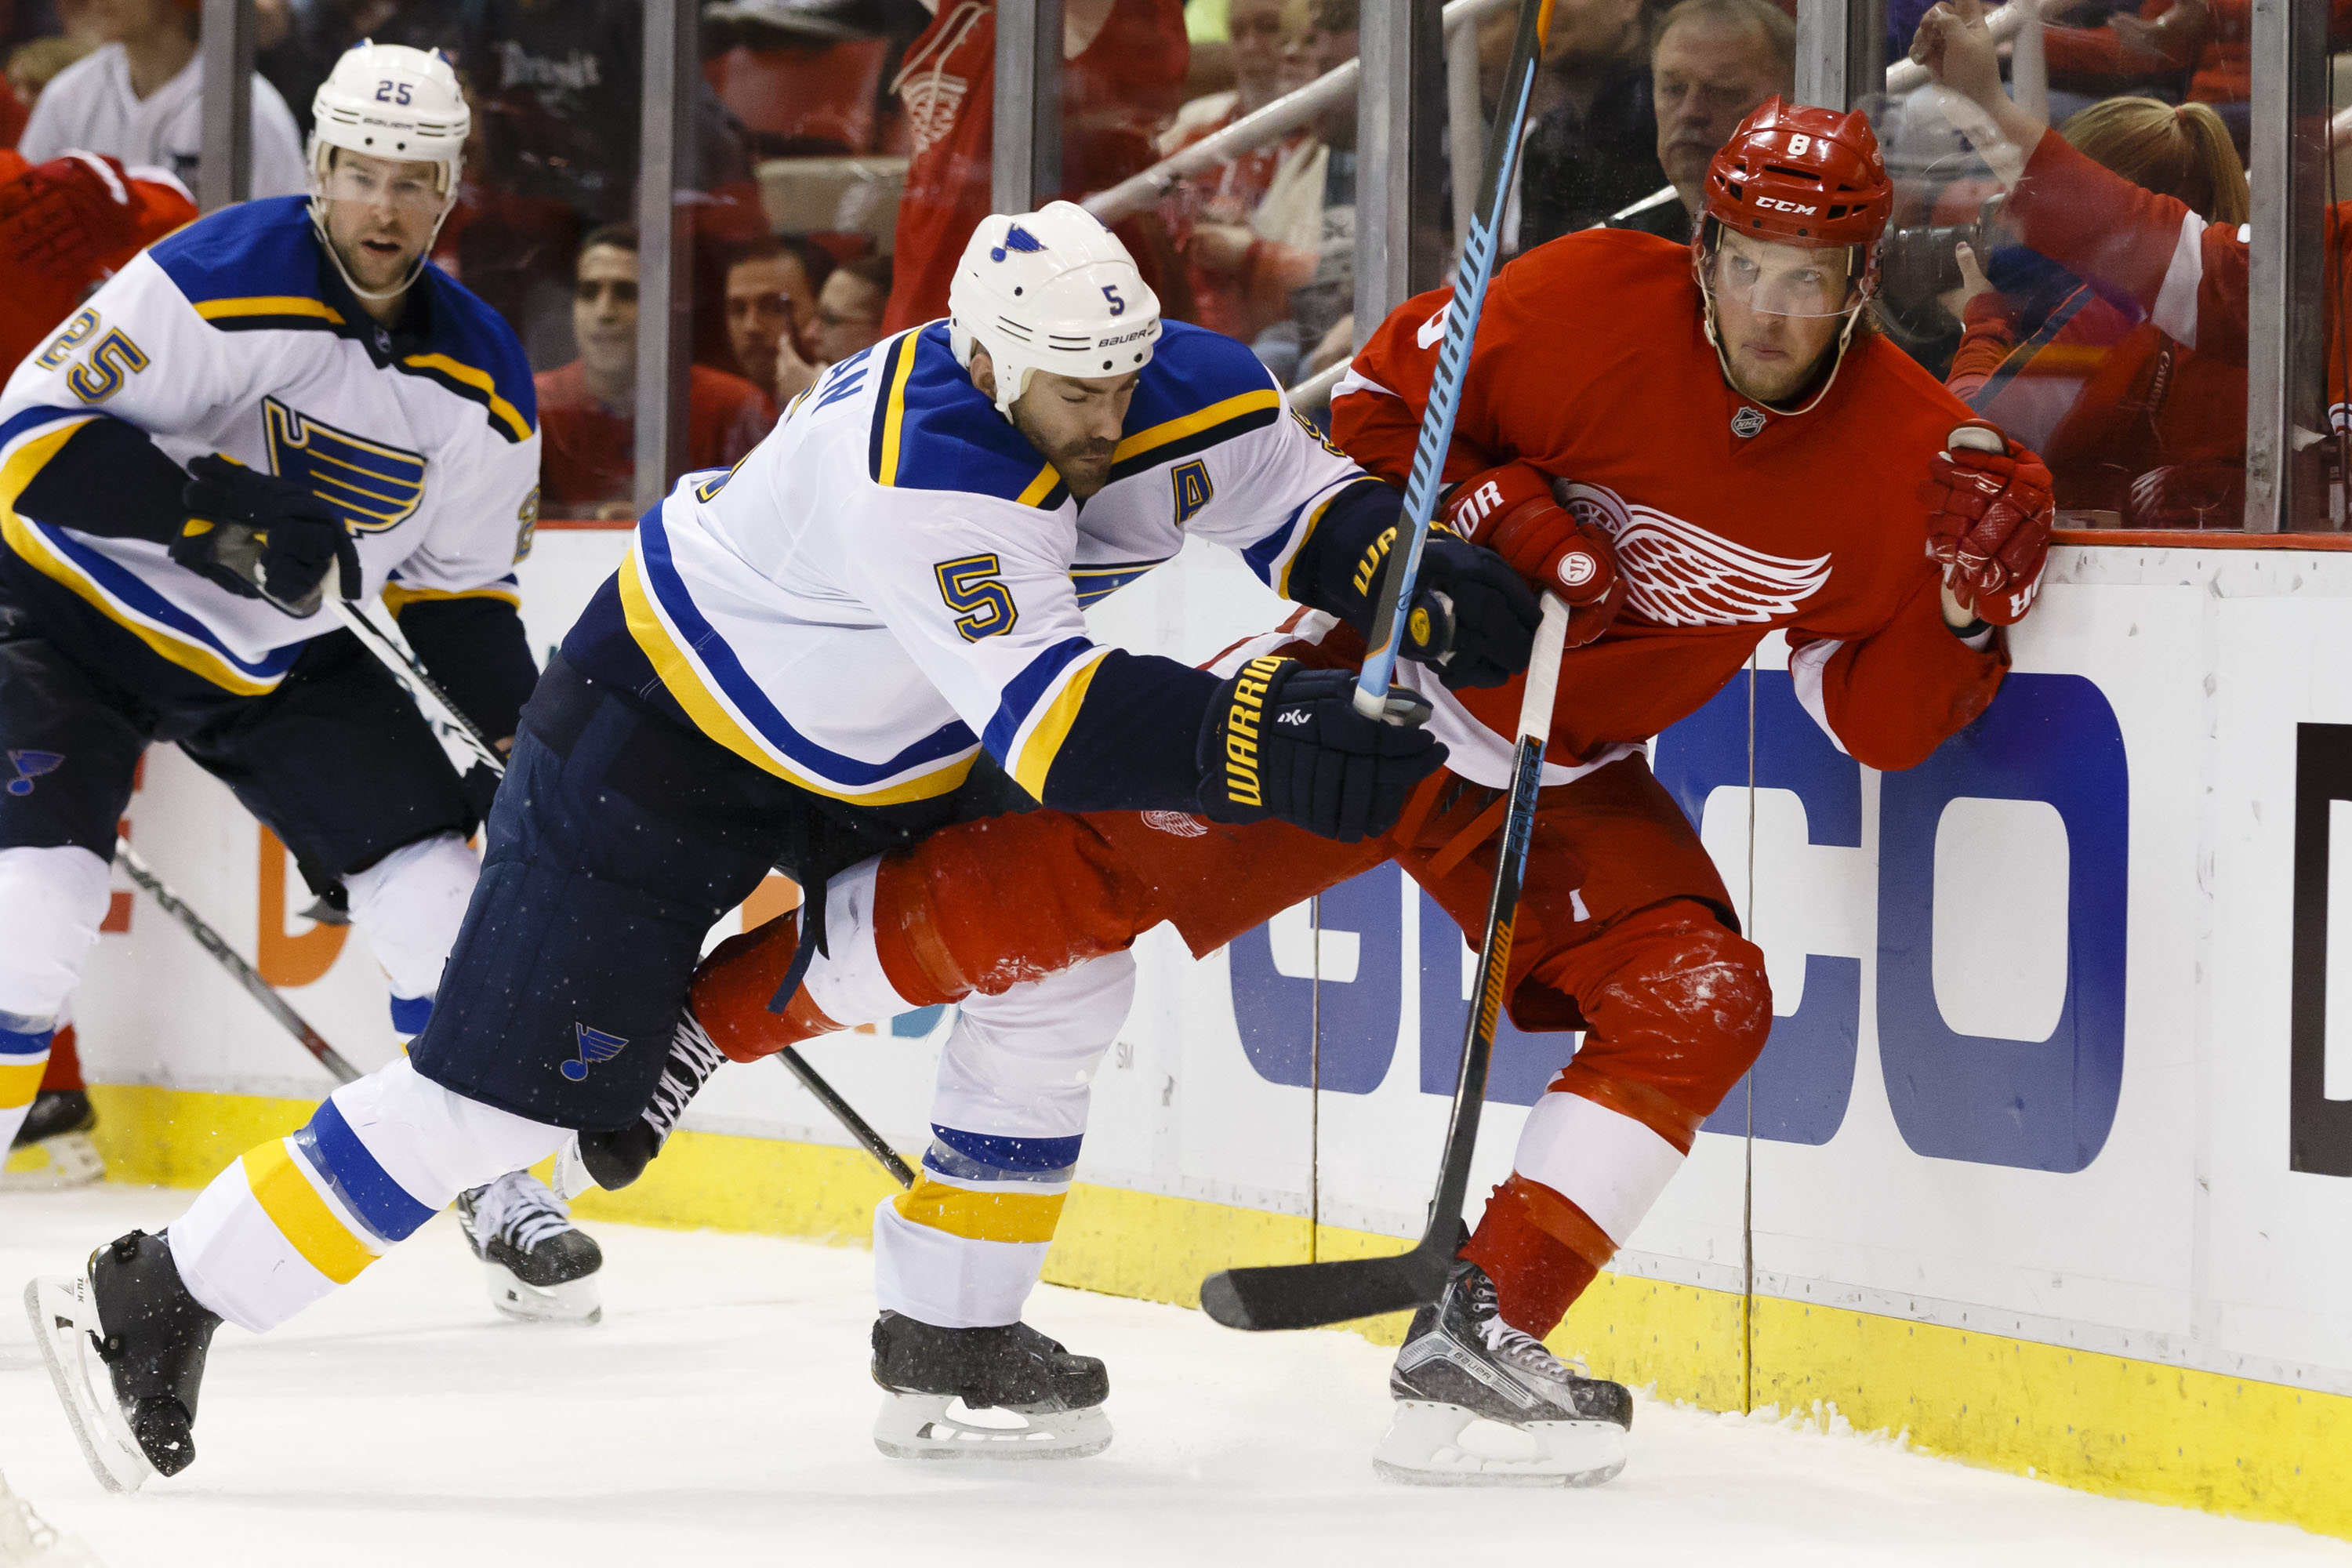 Barret Jackman annoying Red Wings is one of the things I will miss the most.